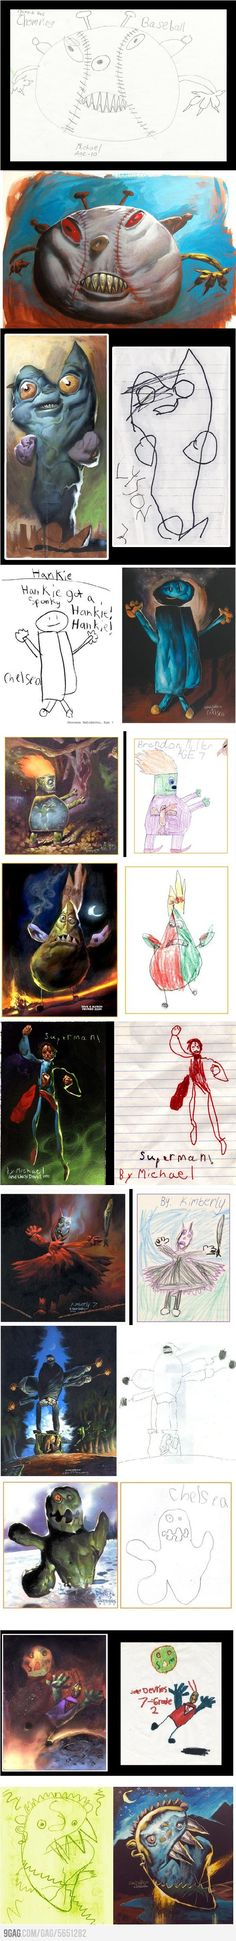 Children's art drawn realistically - could be fun if  high school students re-interpret their own childhood drawings, or those of younger children (k, grade 1) in their school.